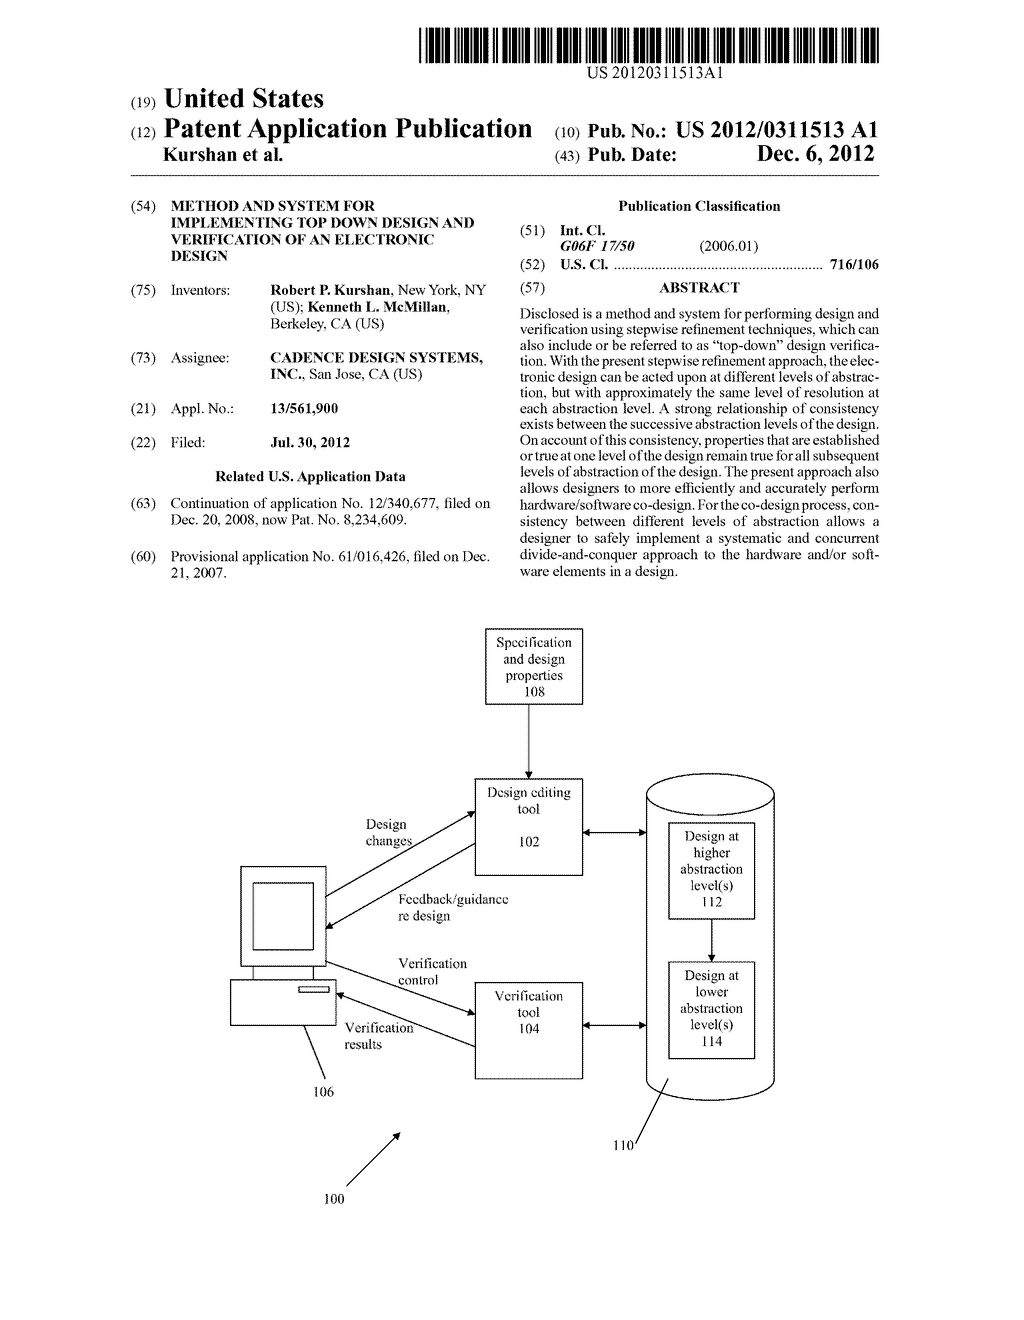 METHOD AND SYSTEM FOR IMPLEMENTING TOP DOWN DESIGN AND VERIFICATION OF AN     ELECTRONIC DESIGN - diagram, schematic, and image 01